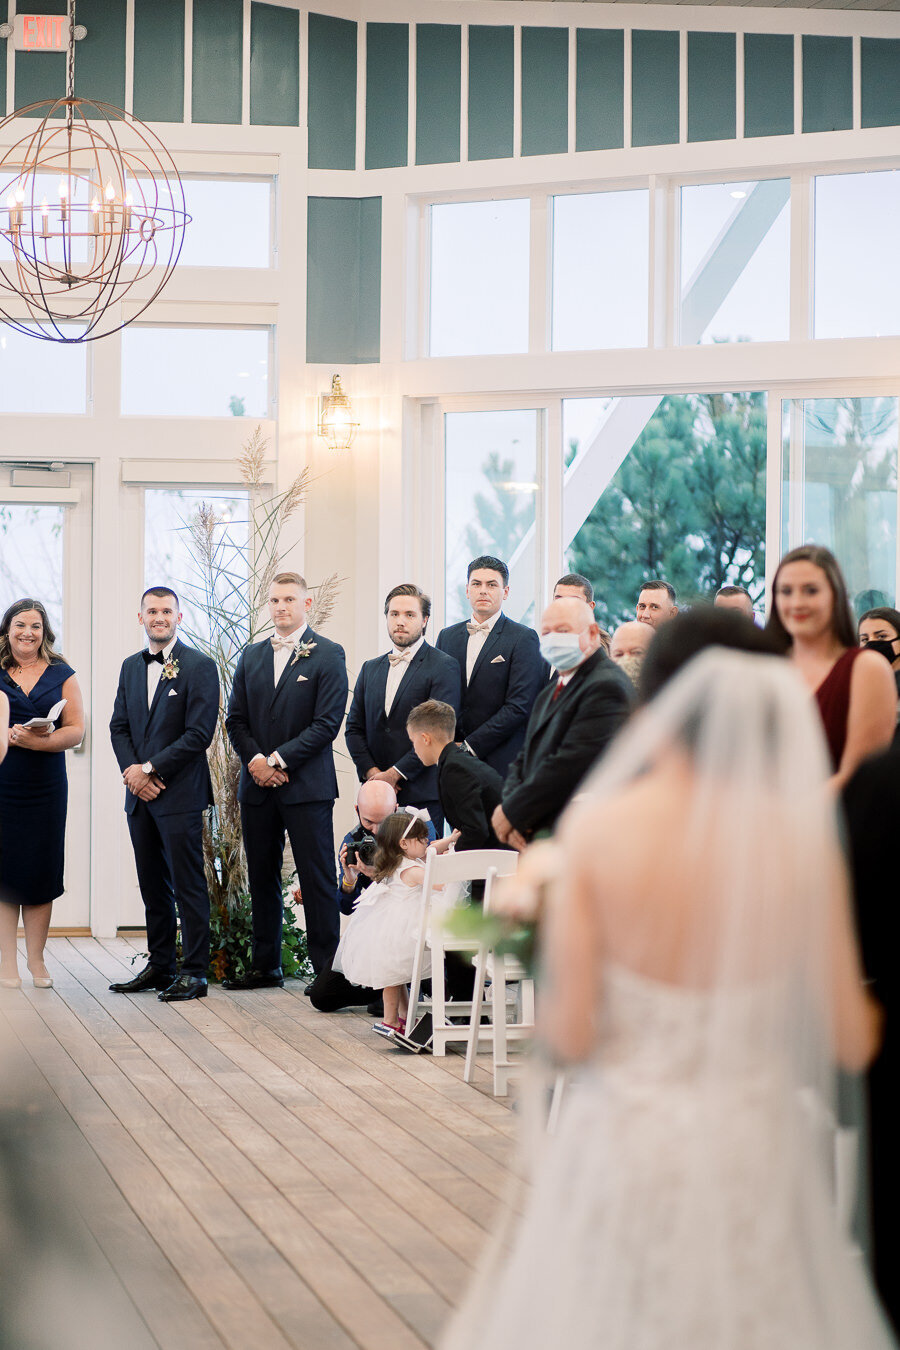 Chesapeake_Bay_Beach_Club_Stevensville_Maryland_Wedding_Megan_Harris_Photography_Blog-108